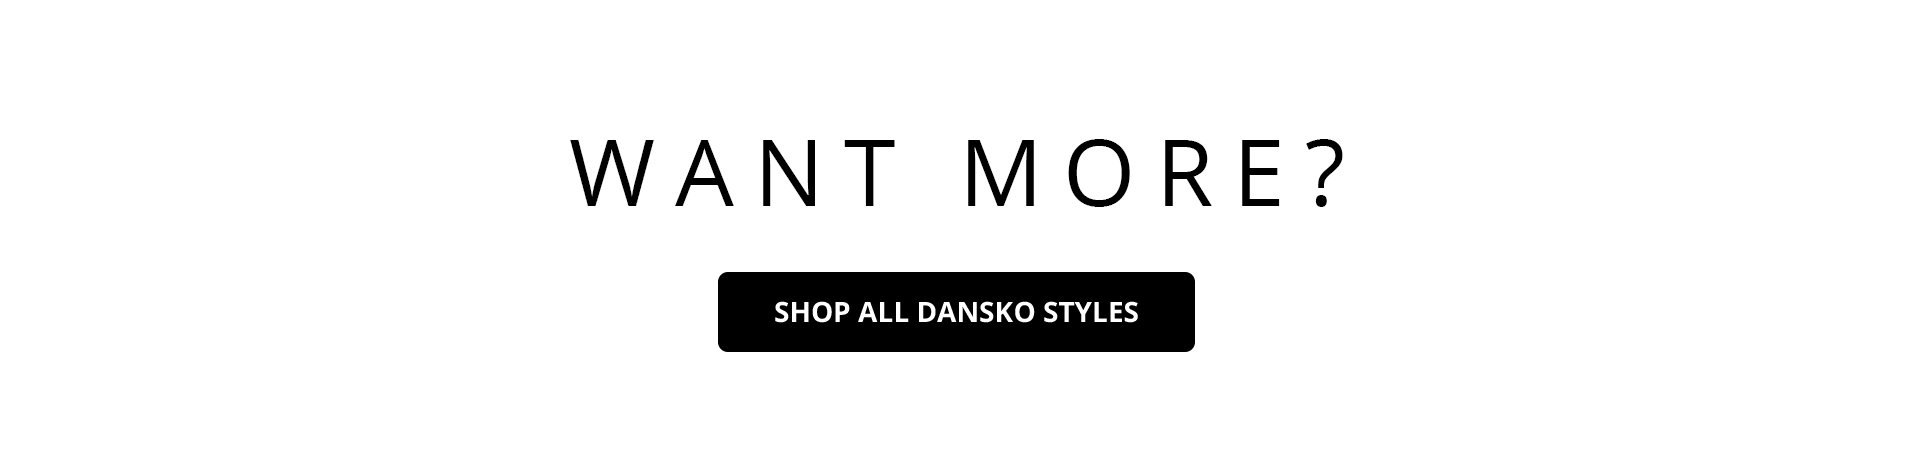 Want more? Shop All Dansko Styles.